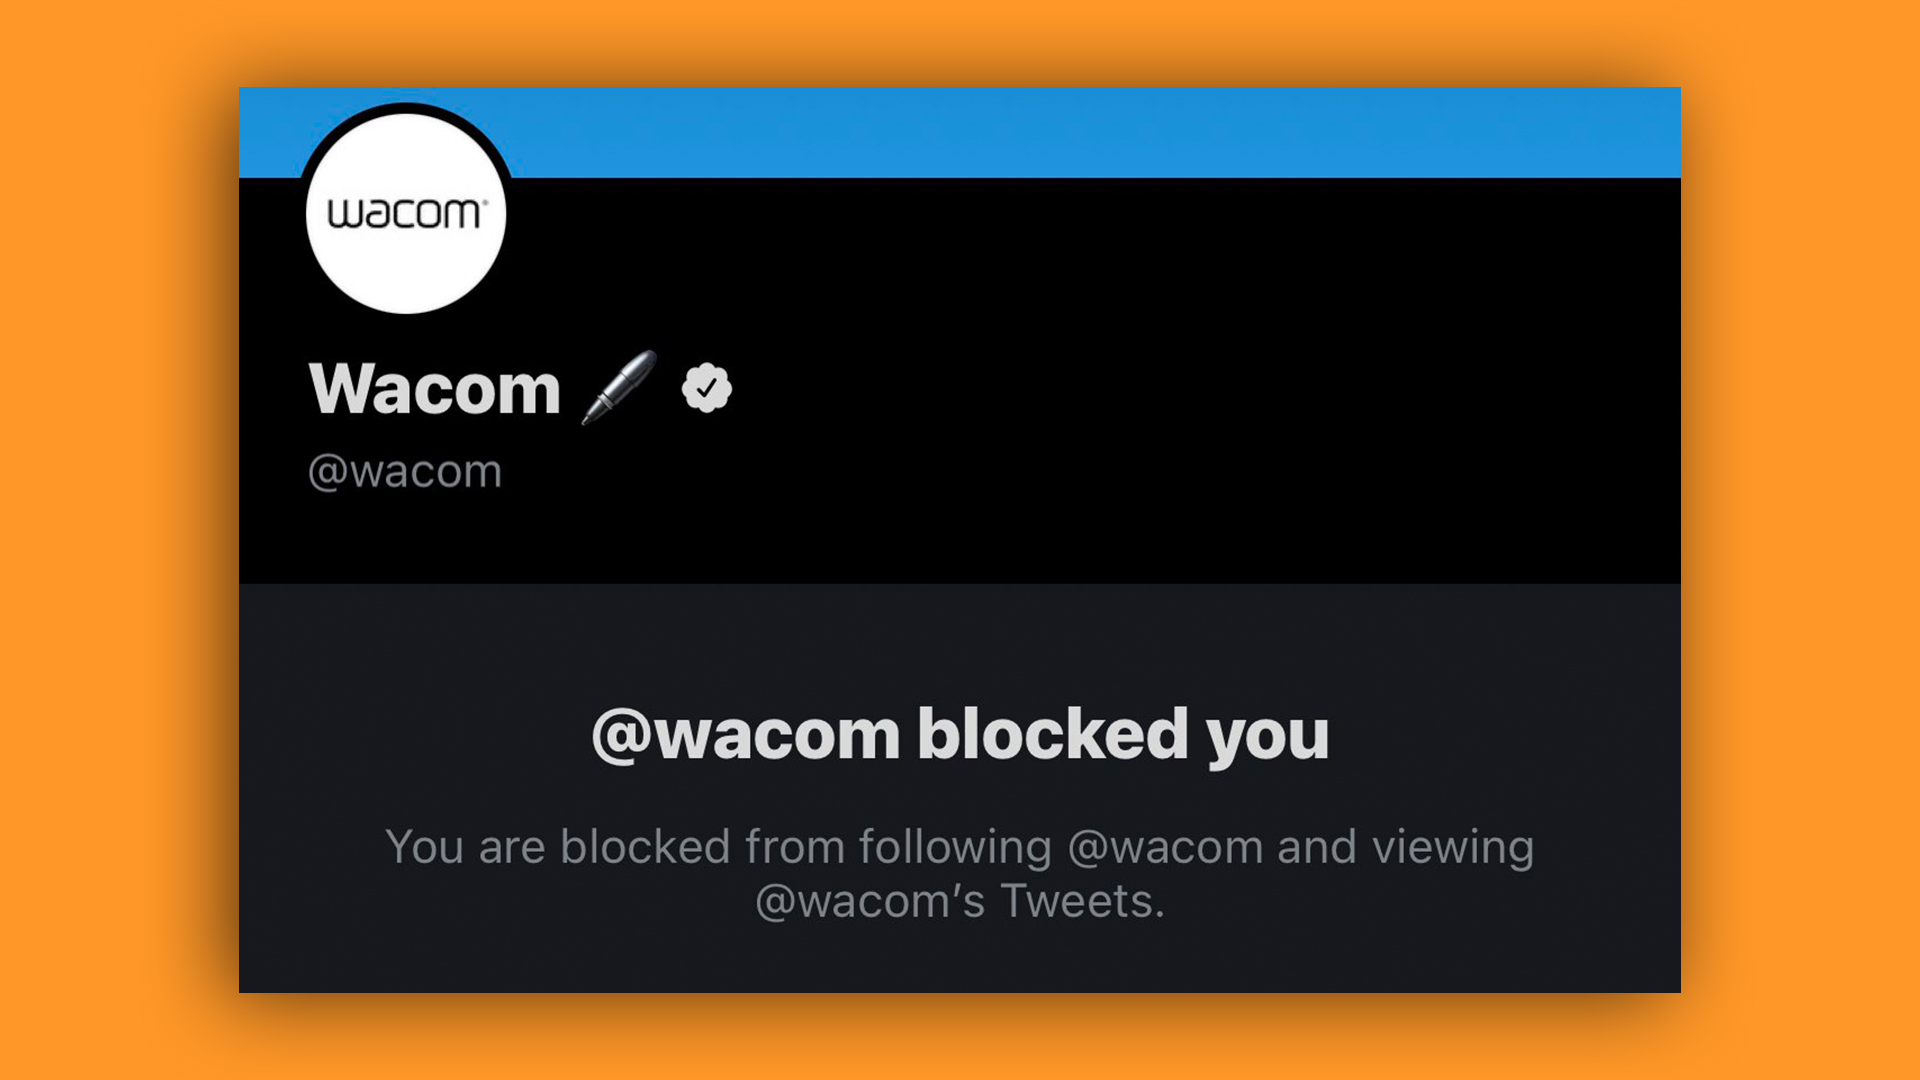 People are very, very unhappy with Wacom - here's why